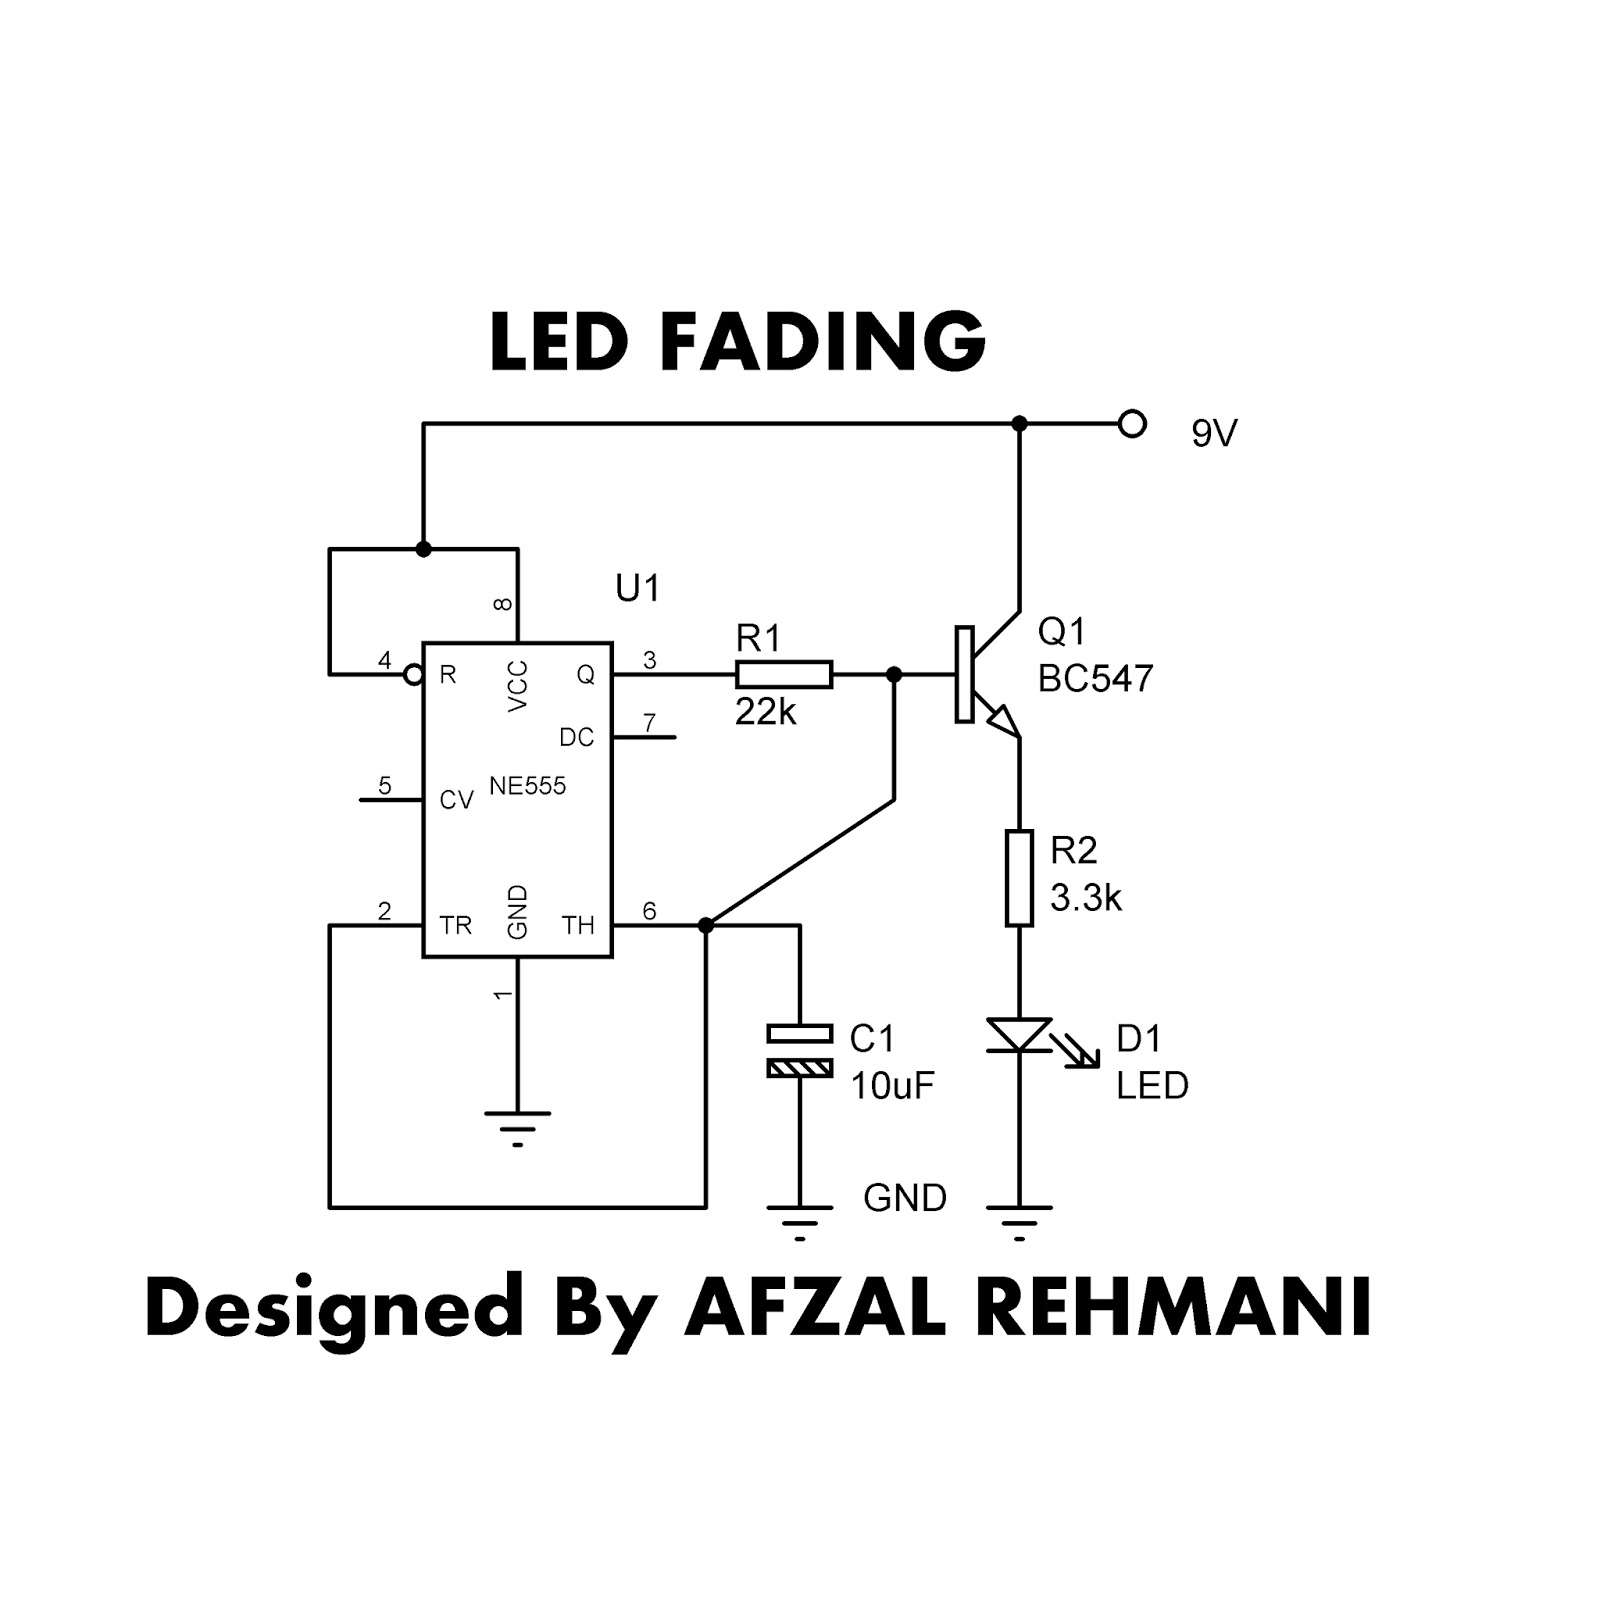 Wellcome To 360 Circuits: How to fade an LED